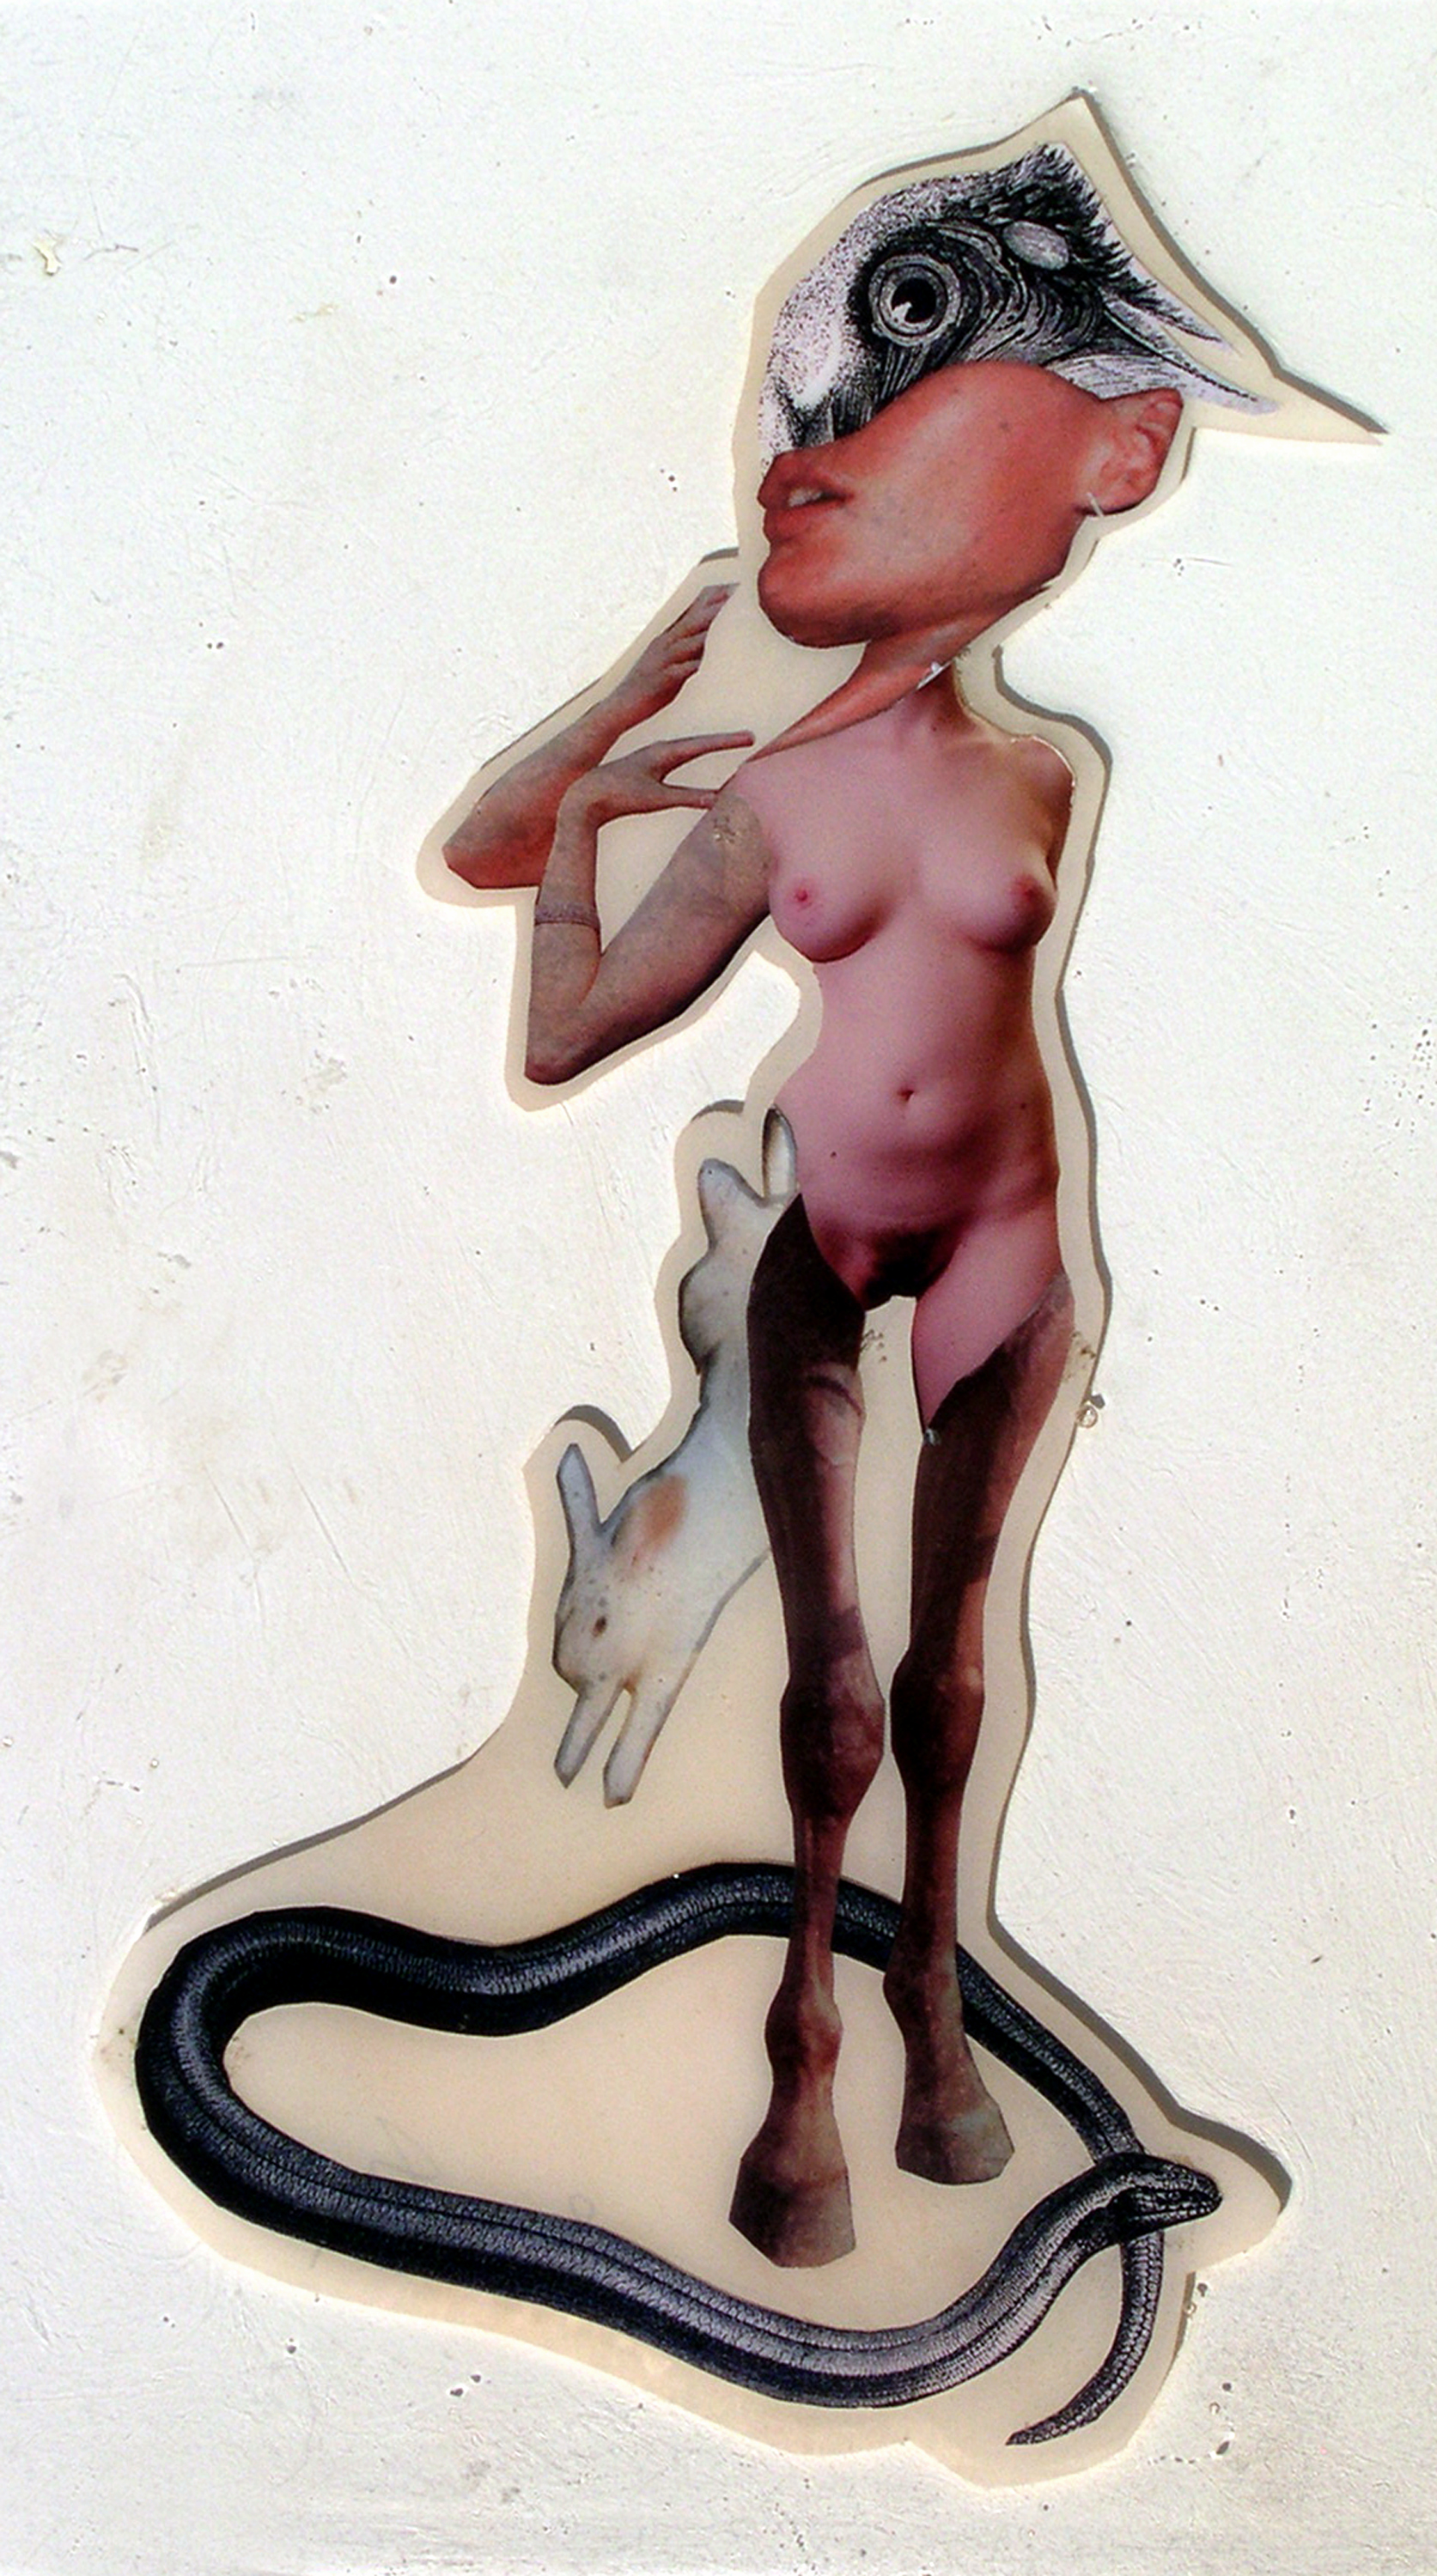 """She's Lost It, 2003,Self-produced photographs and appropriated printed materials cast in plastic resin. 7.25 X 11"""""""